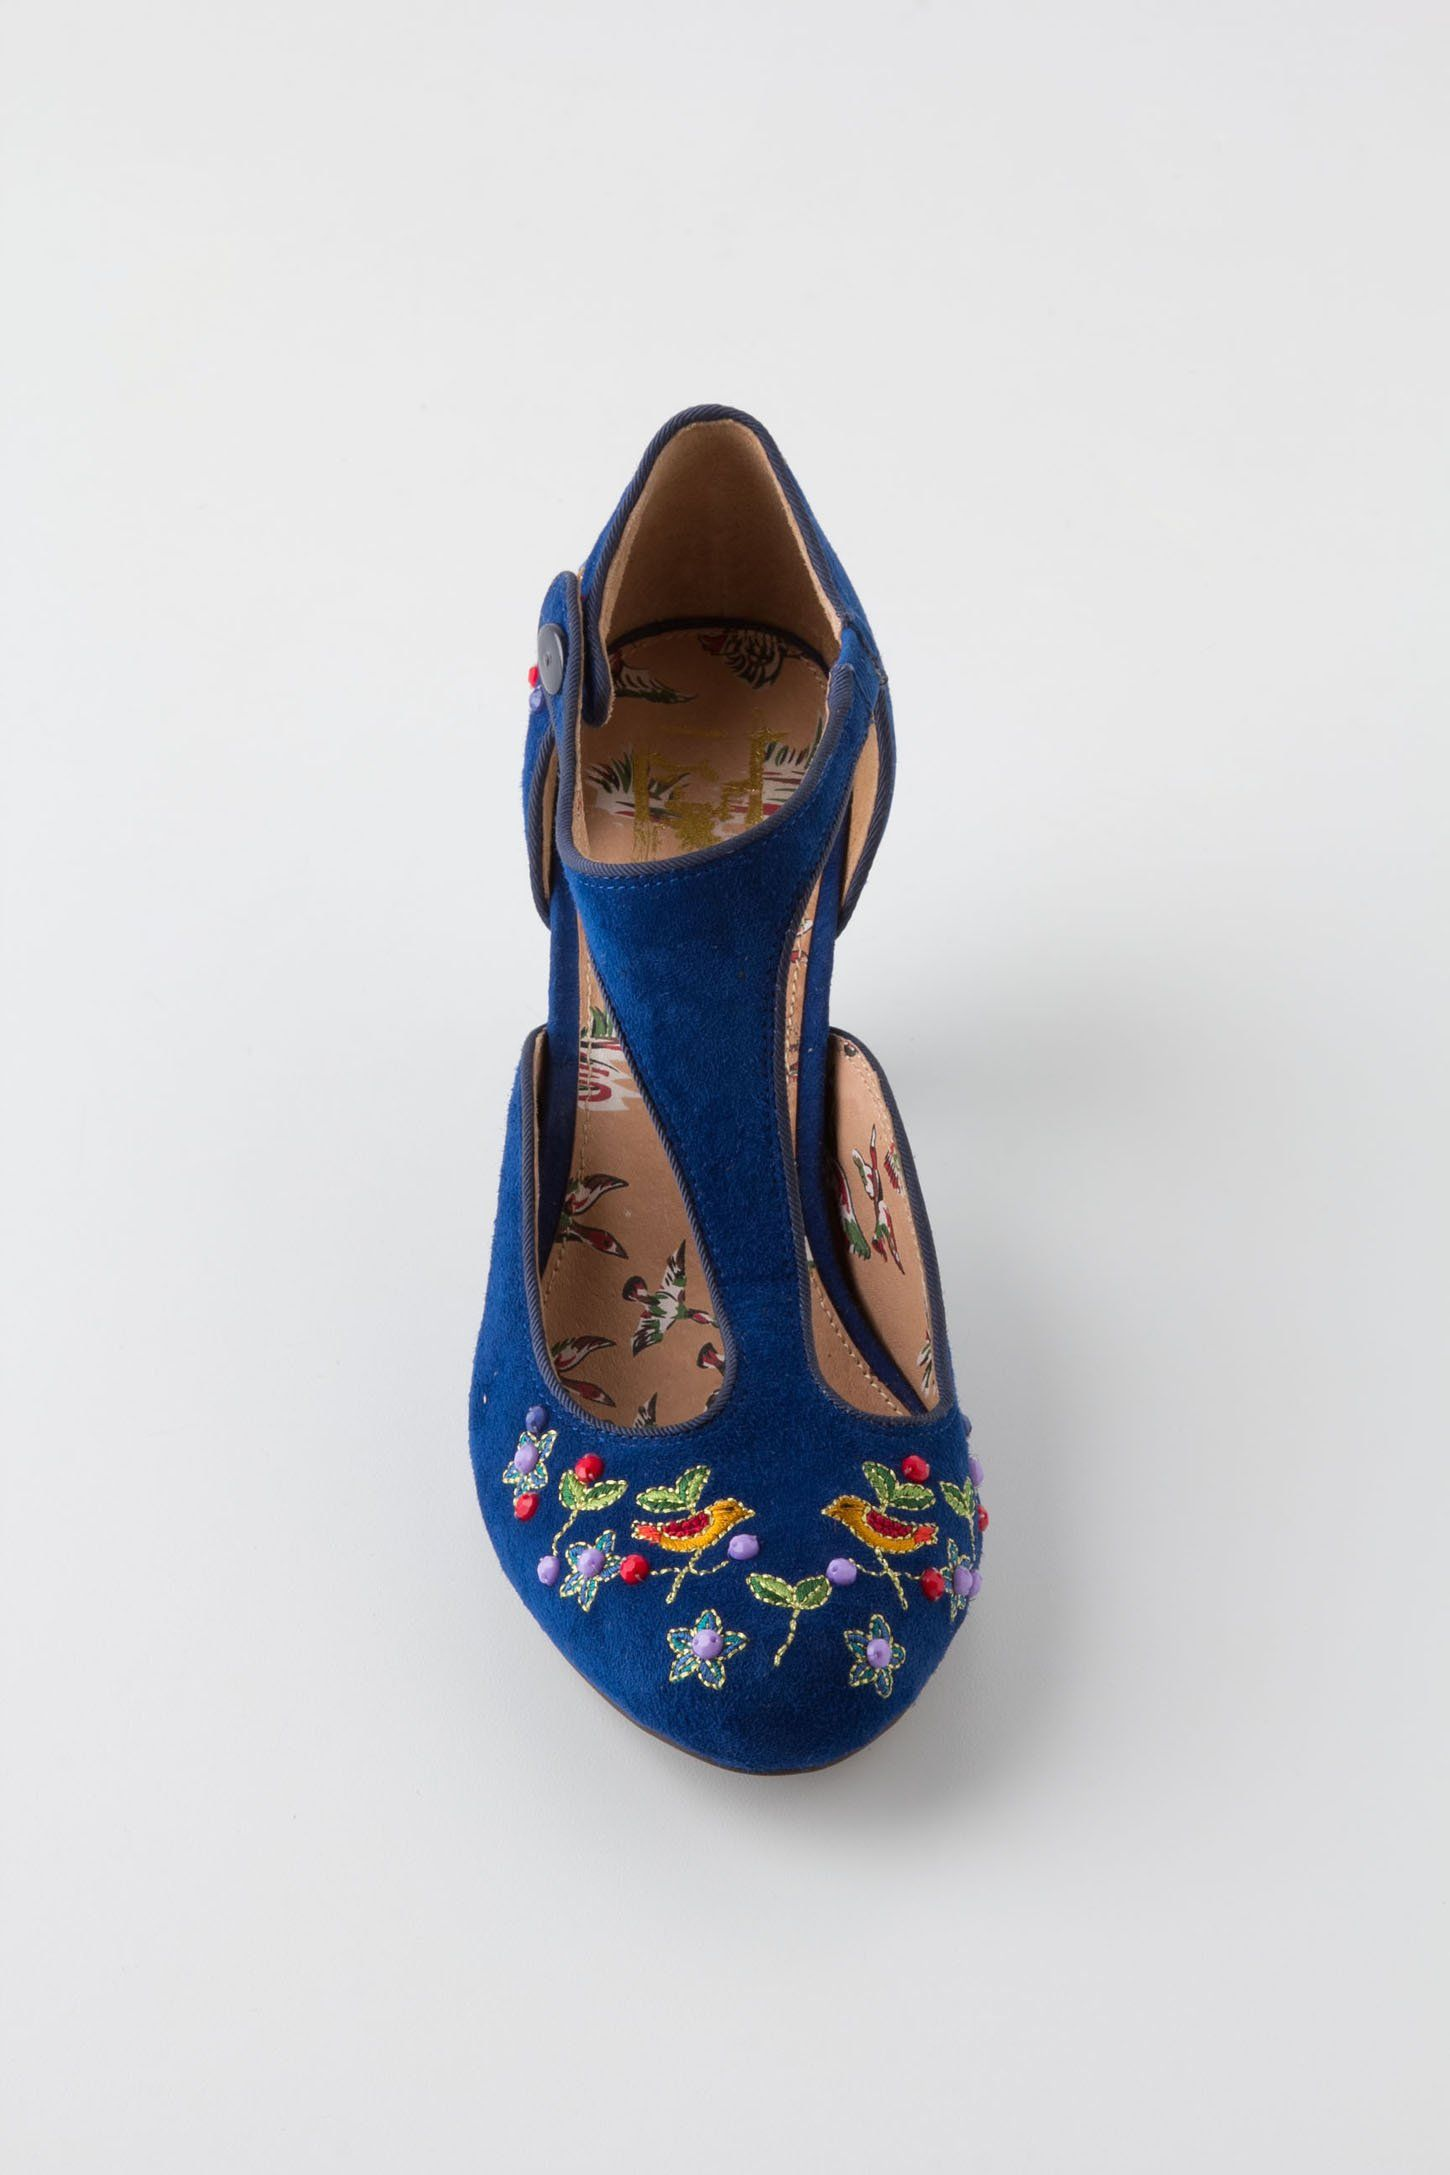 Angelique Hennessy pinangelique hennessy on fashion | beautiful shoes, shoe